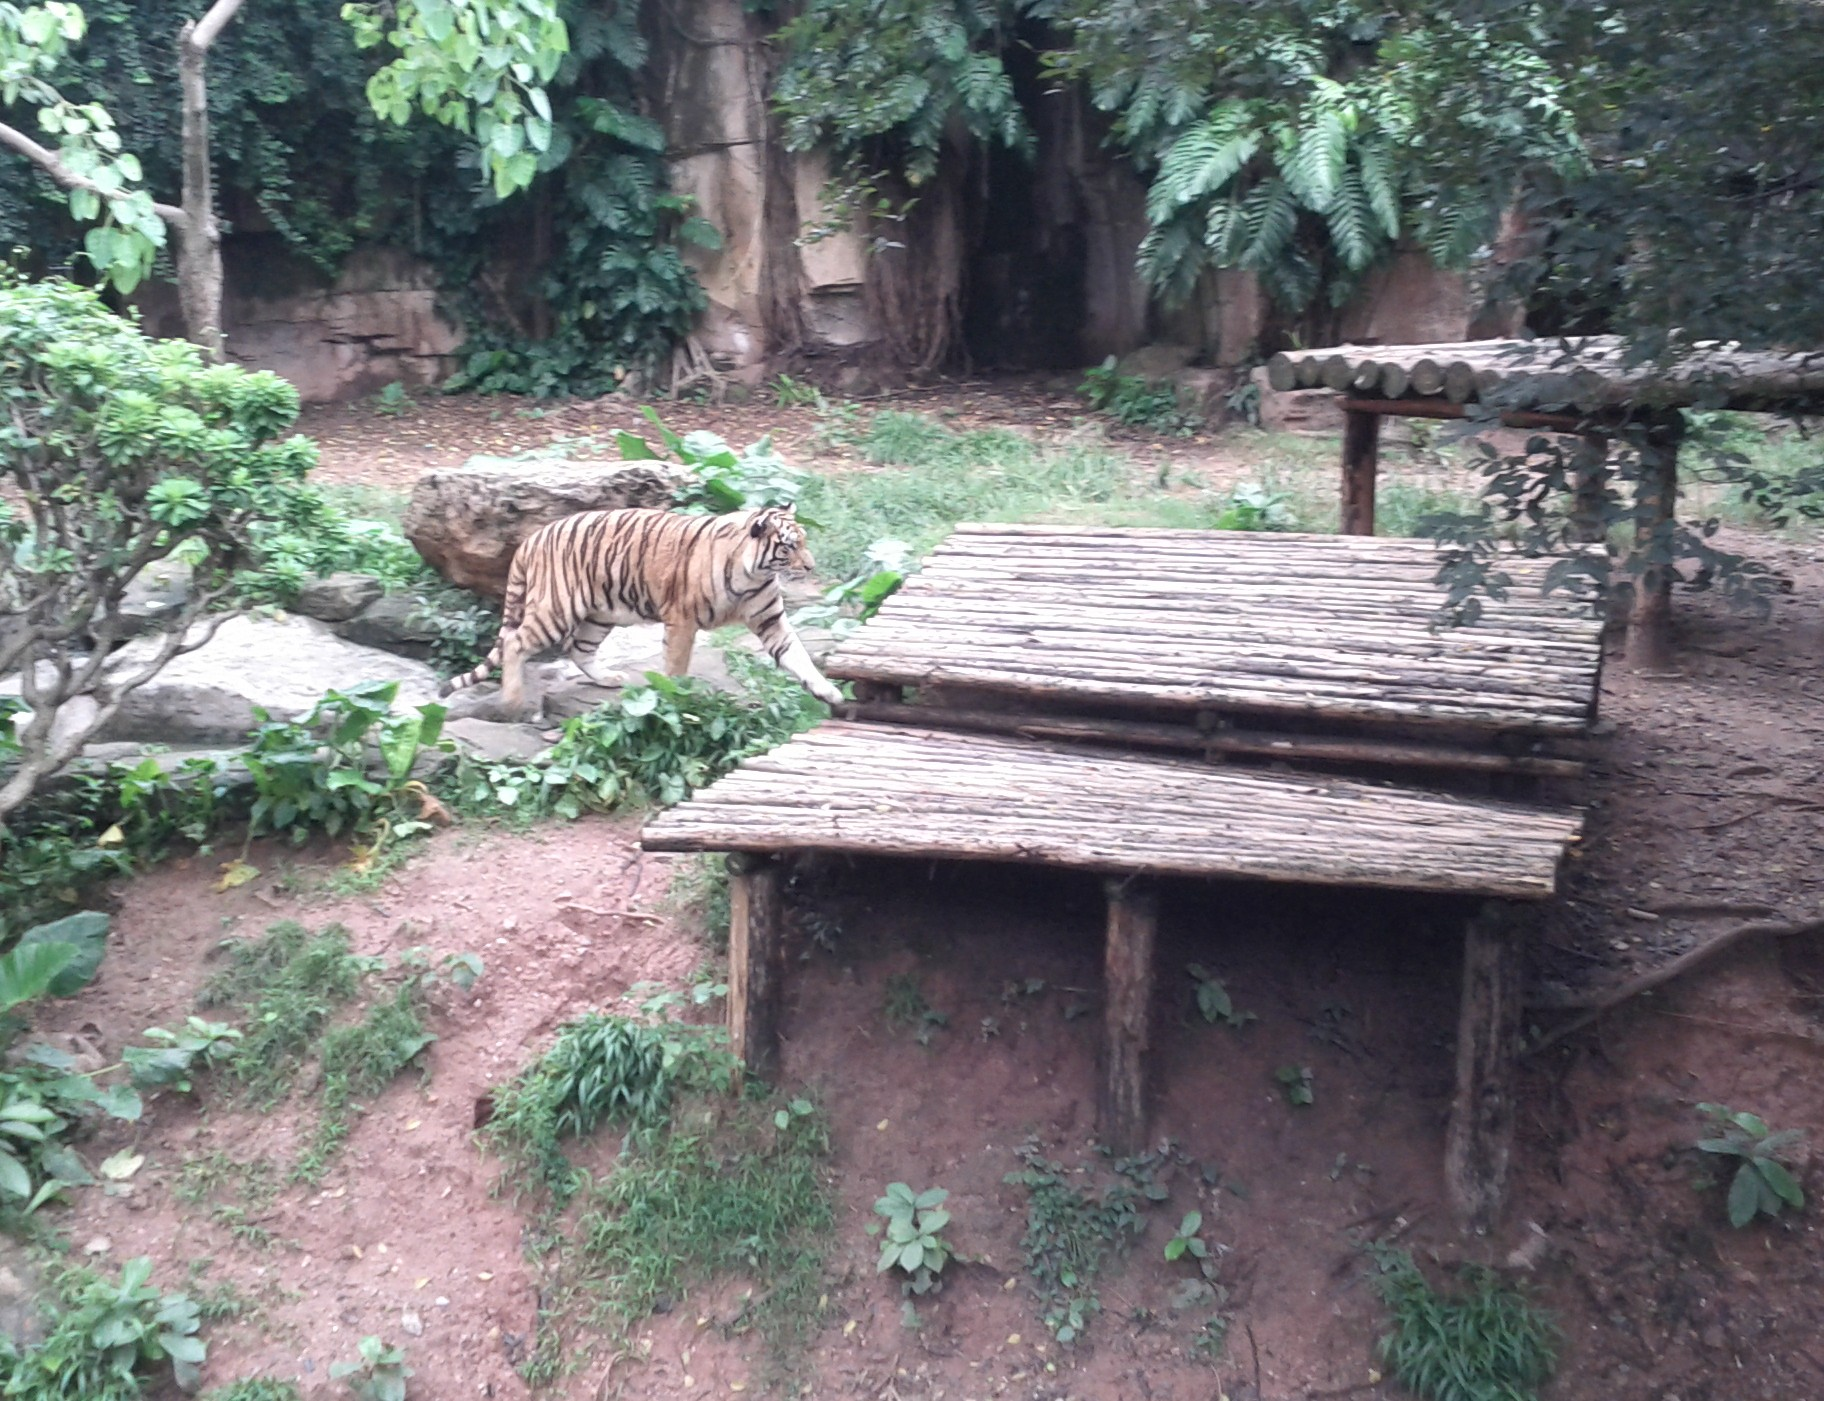 Tiger at Guangzhou zoo